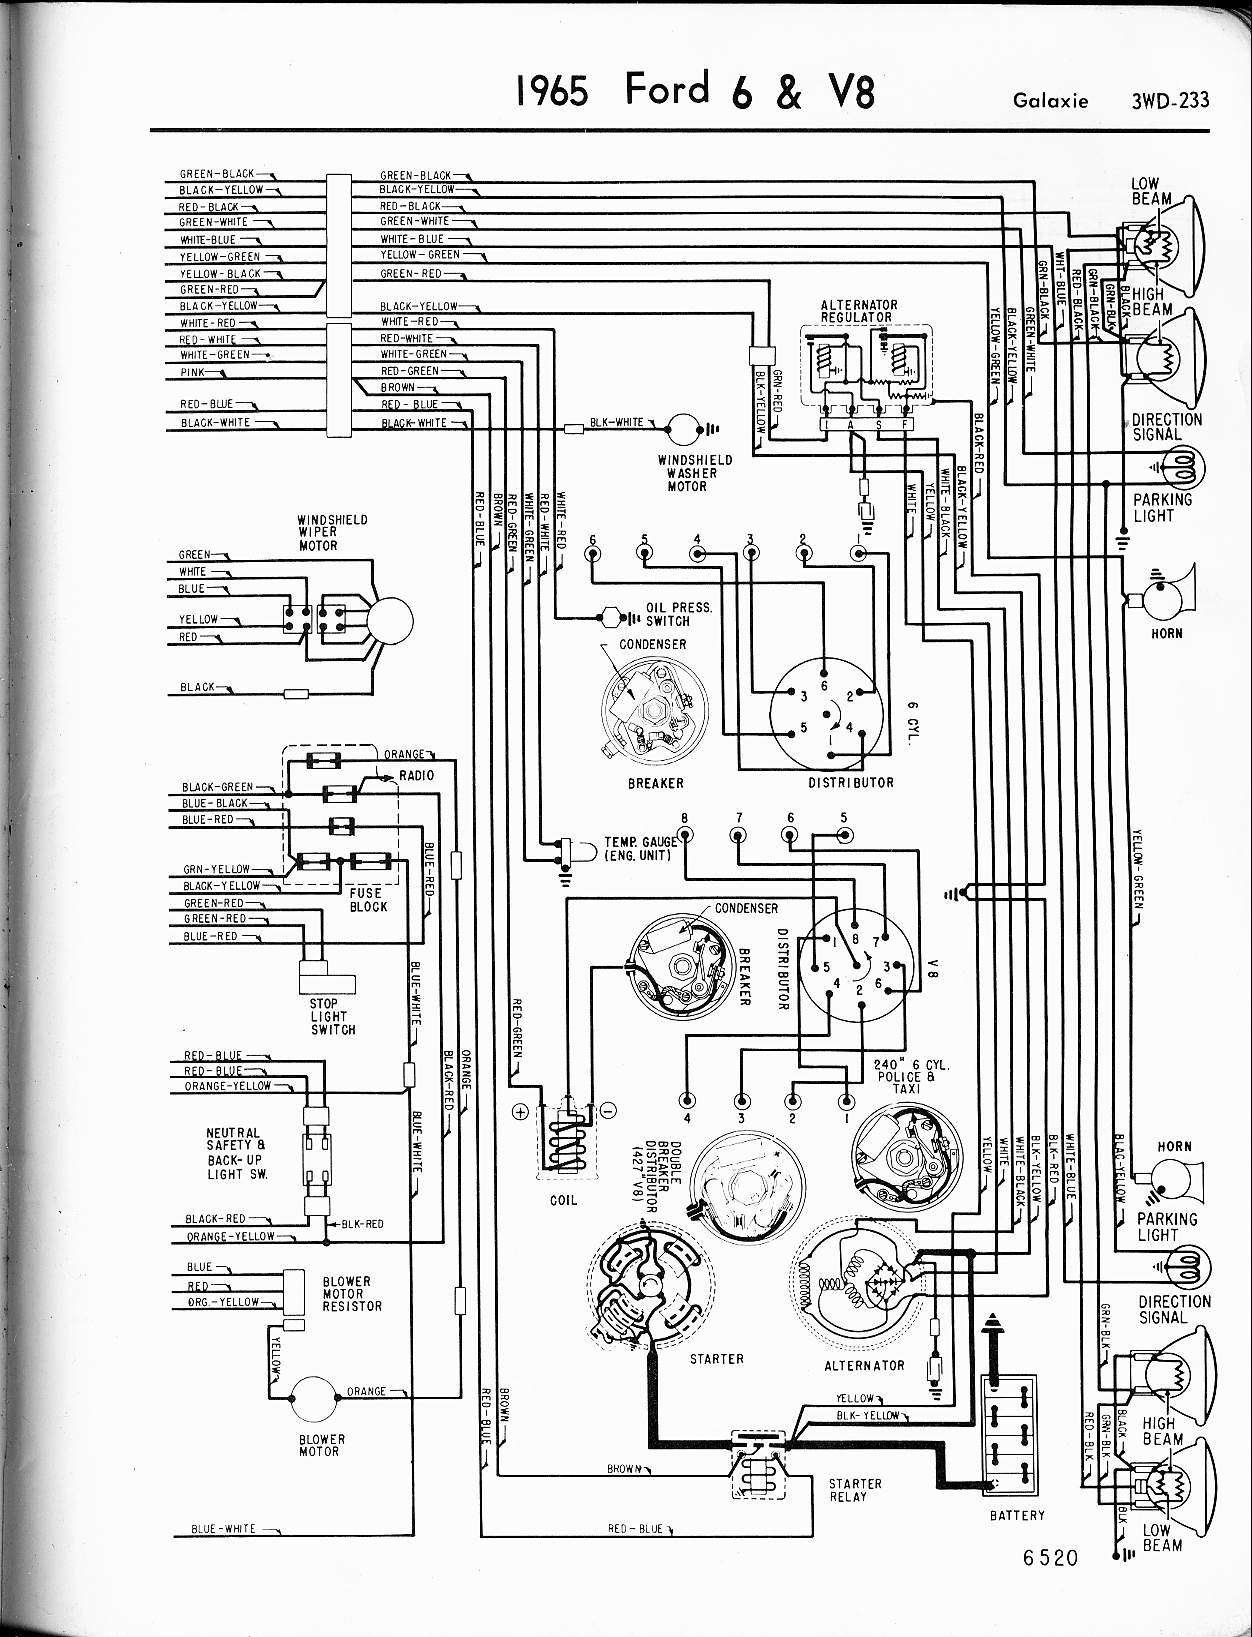 1965 ford f100 tail light wiring color wiring diagram perfomance  1968 galaxie 500 engine wiring diagram #8